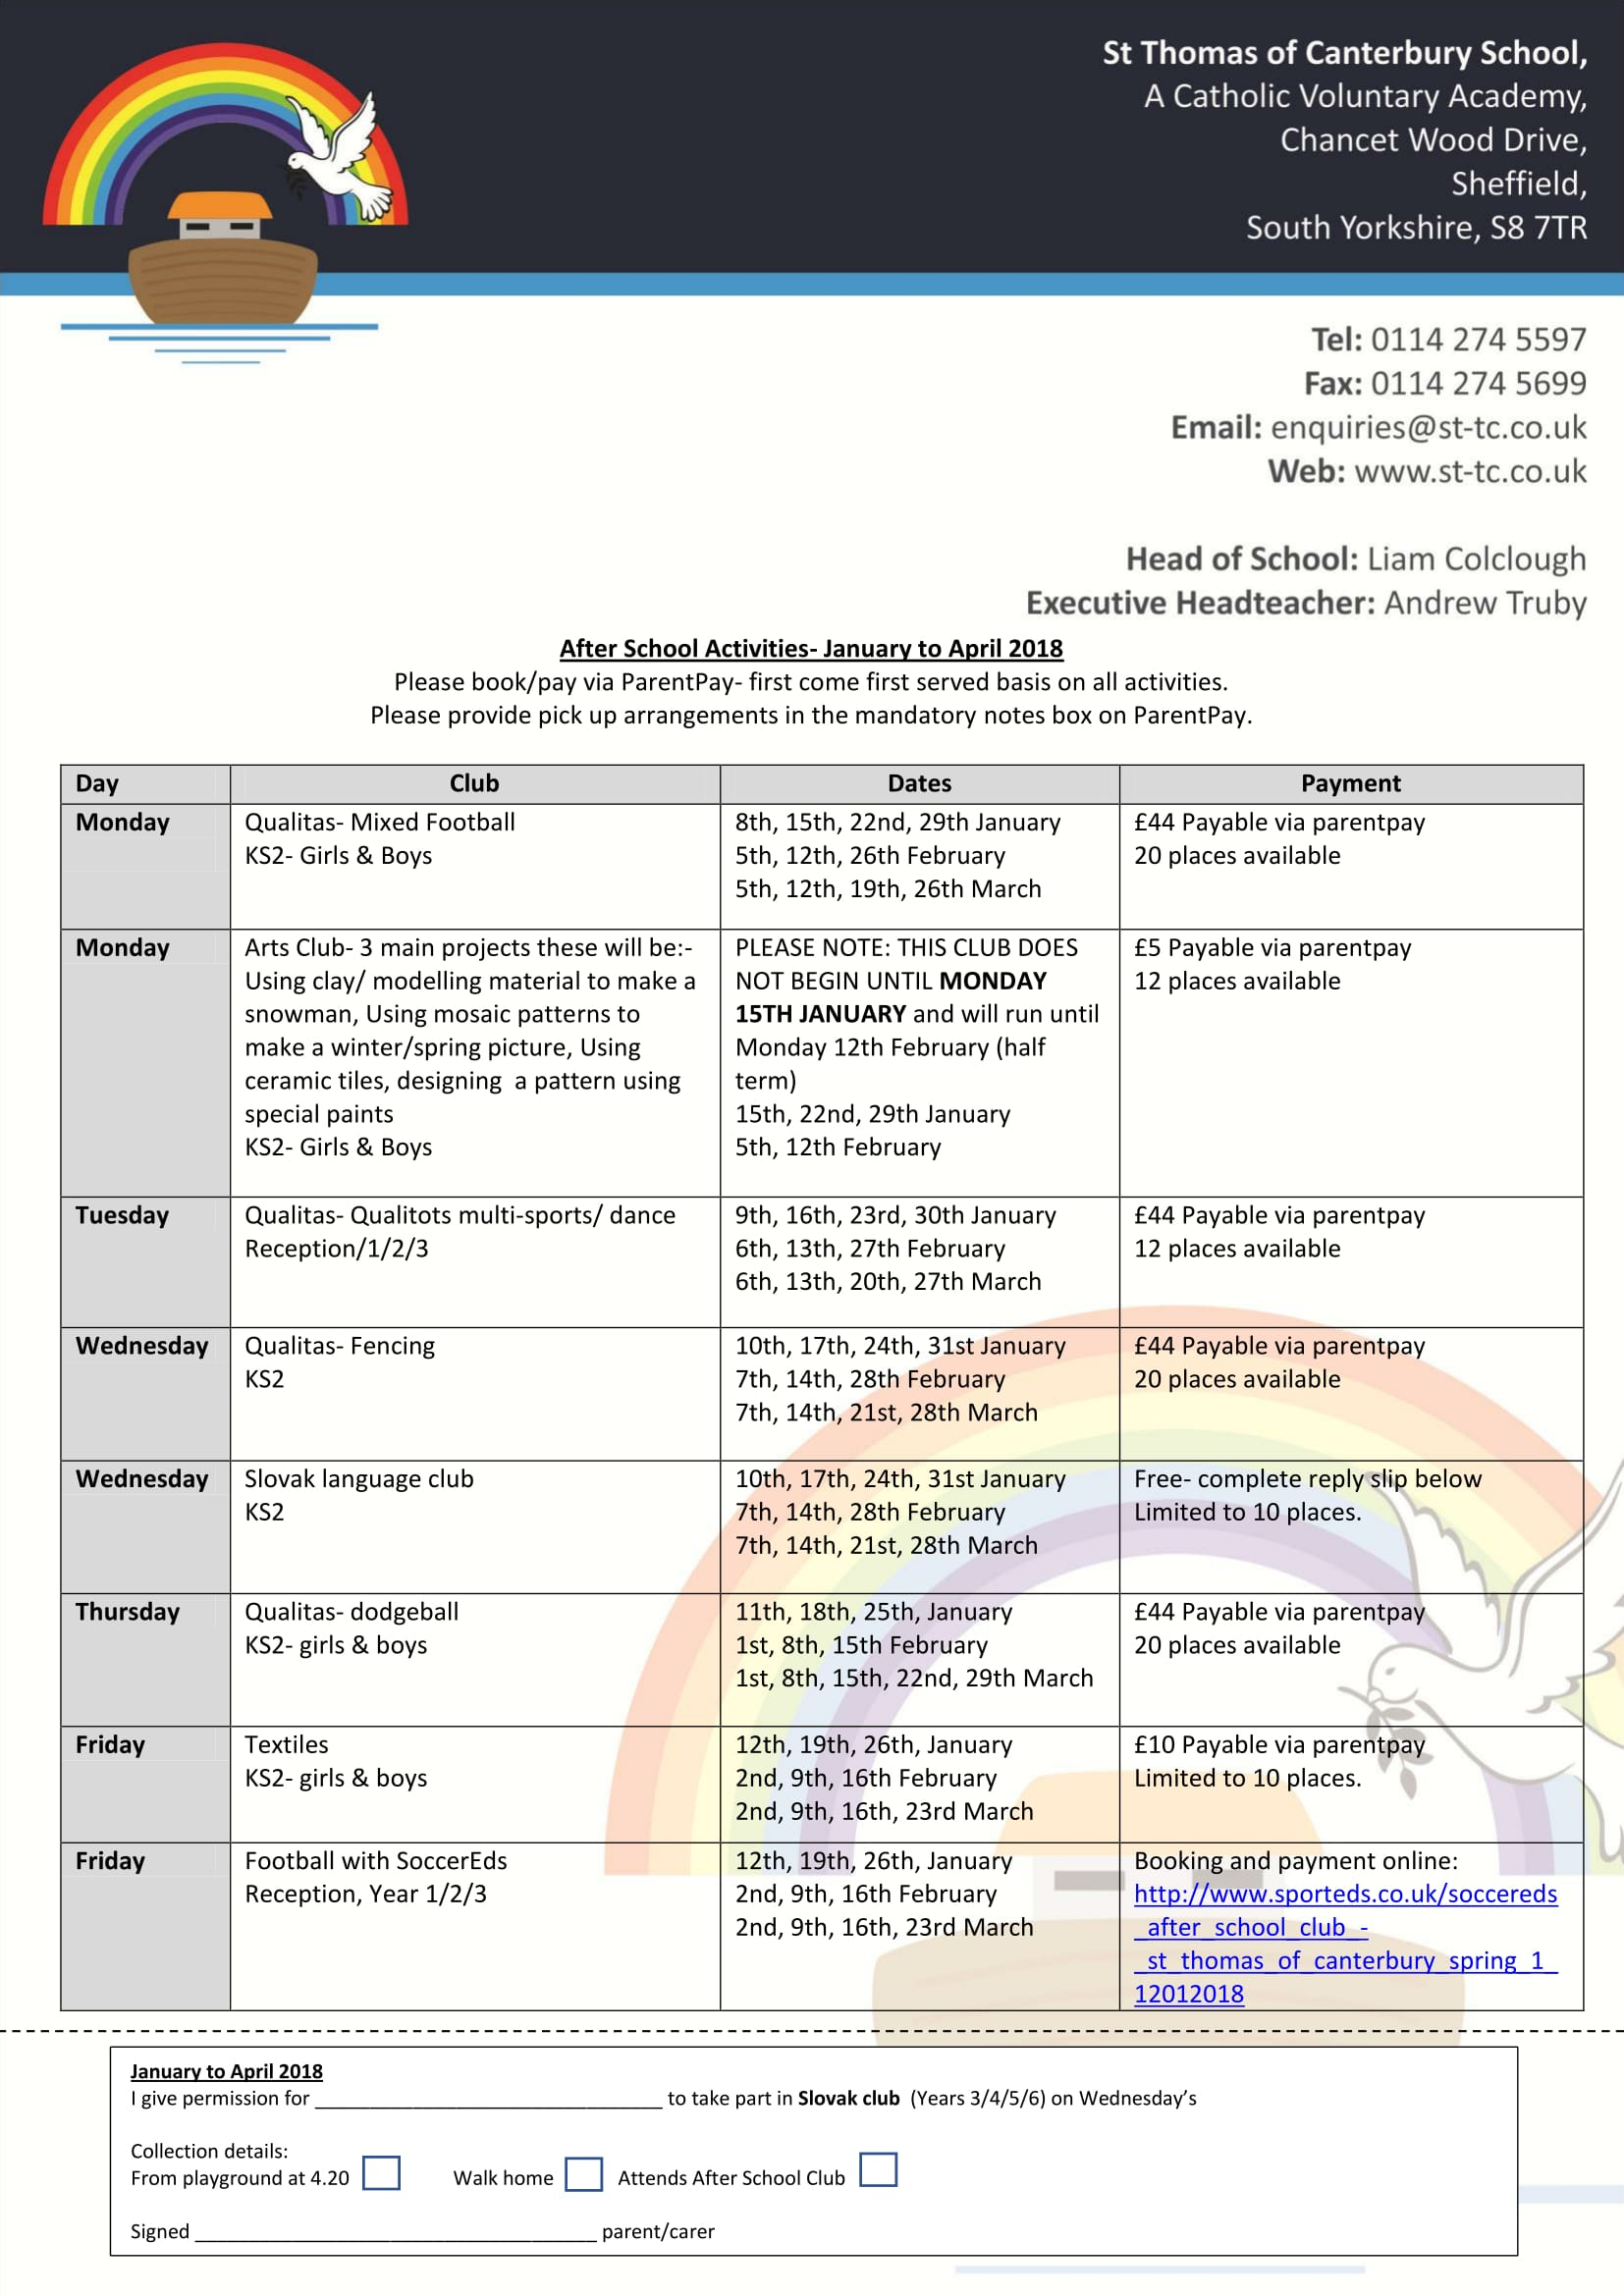 Afterschool Activities Jan to April 18 1